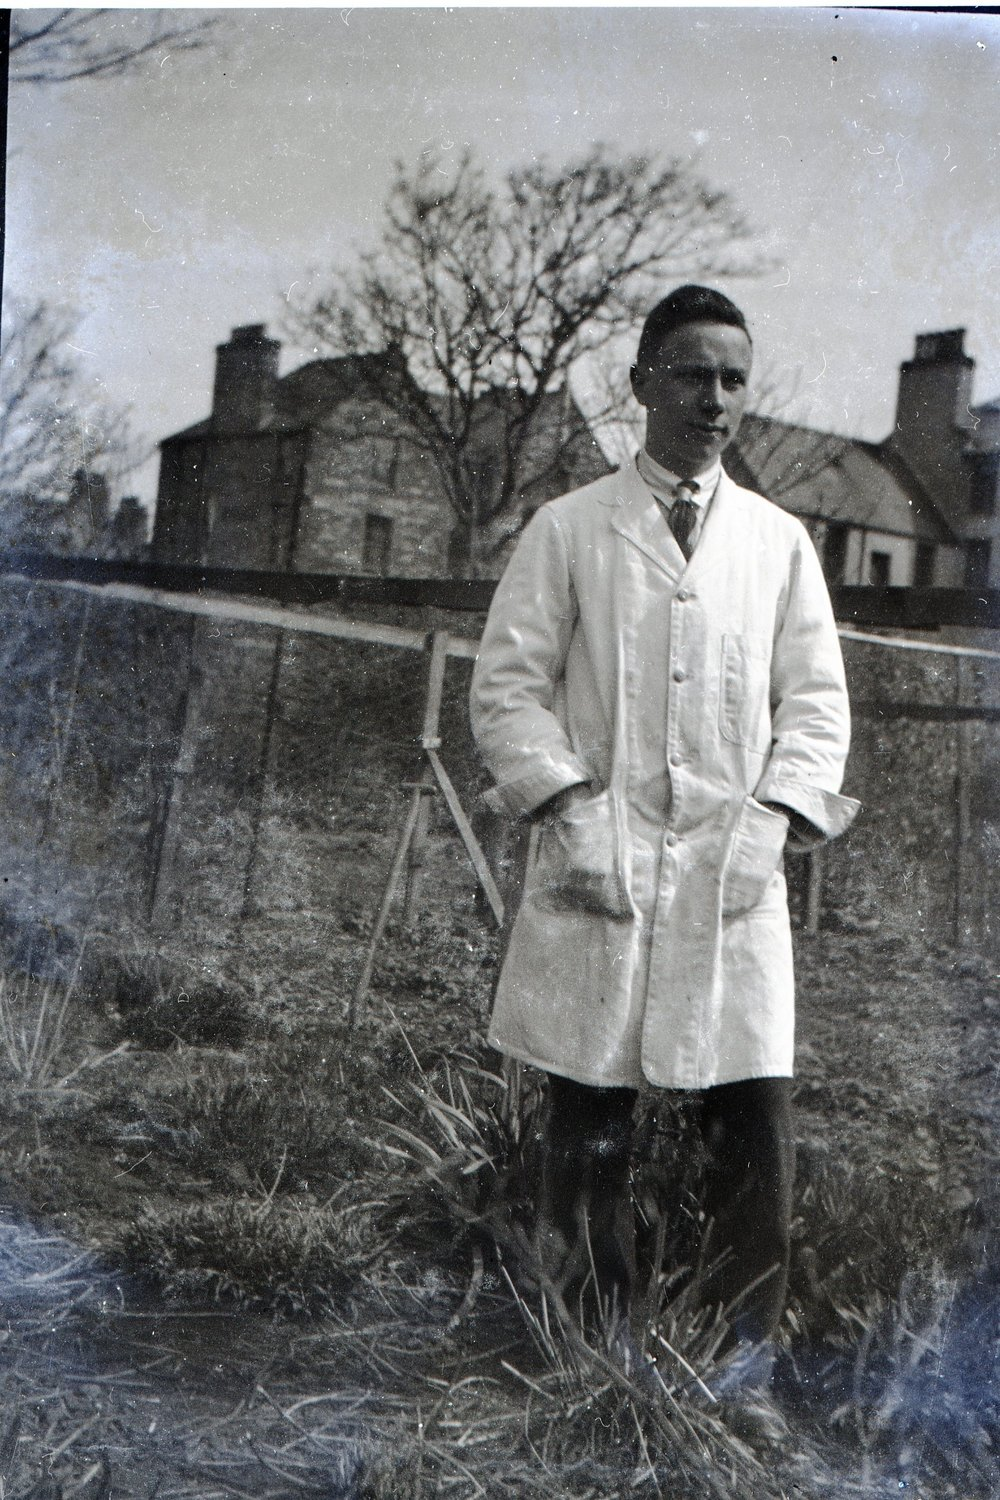 Patrick Gorie in shop coat - his first day at work, perhaps. Summer 1925 034.jpg